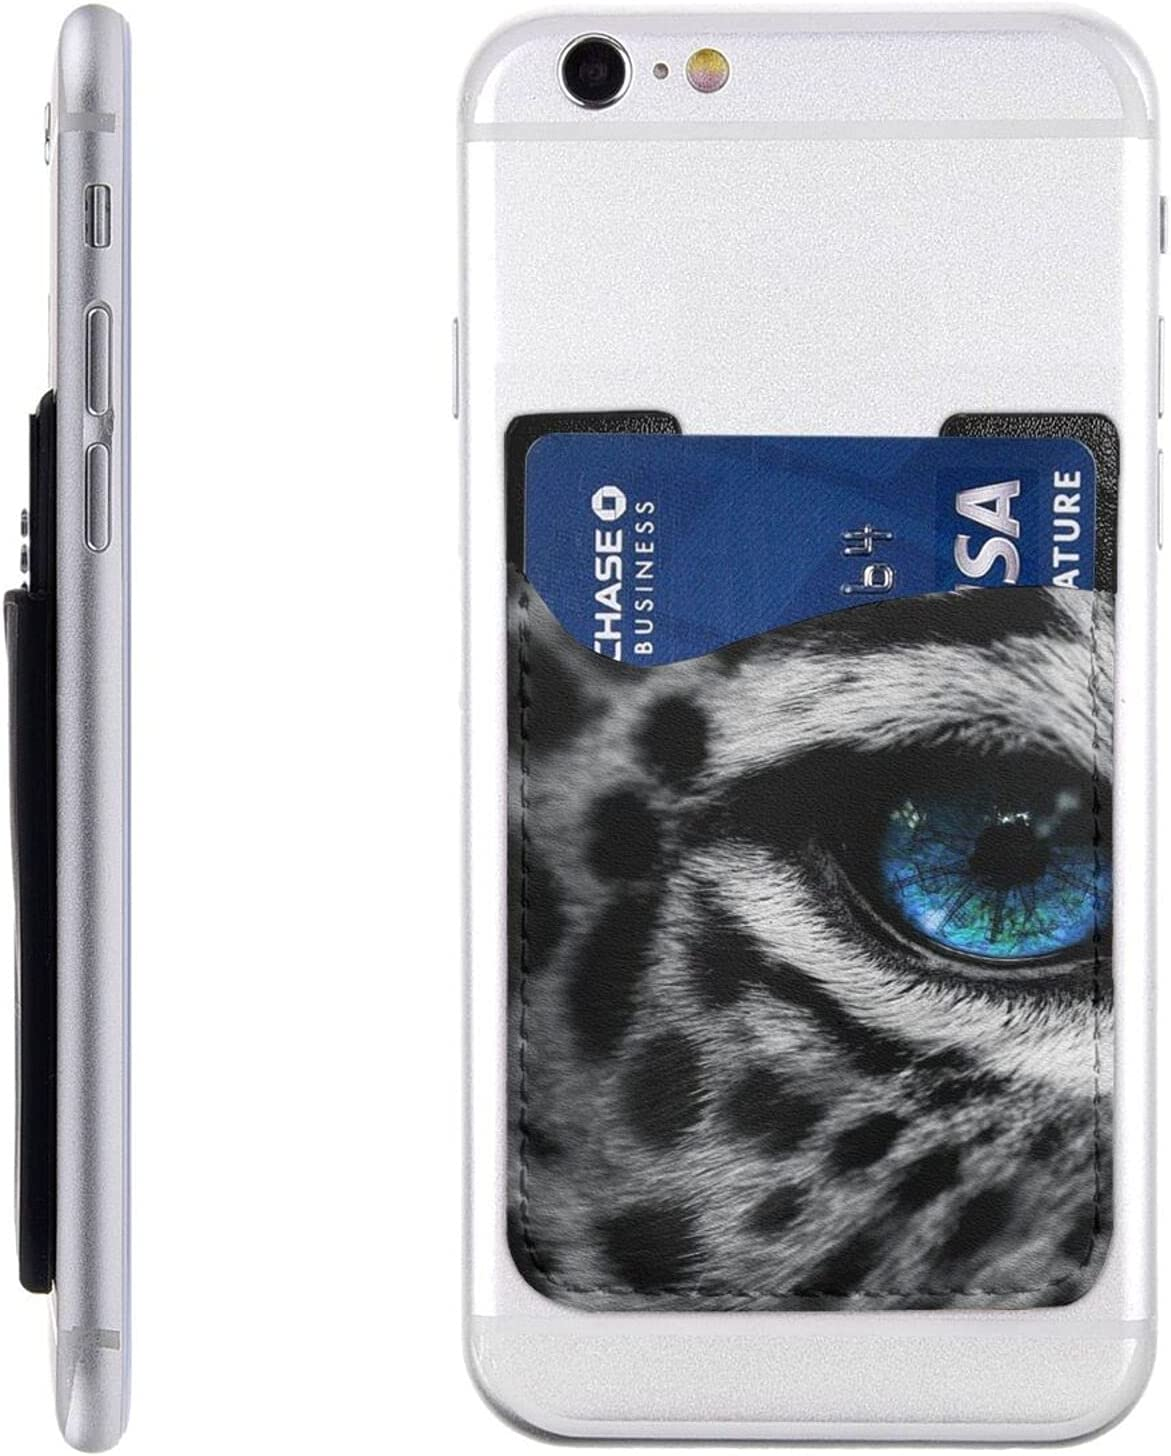 Snow Leopard Eye Phone Card Popular latest overseas Stick Holder Wall Cell On